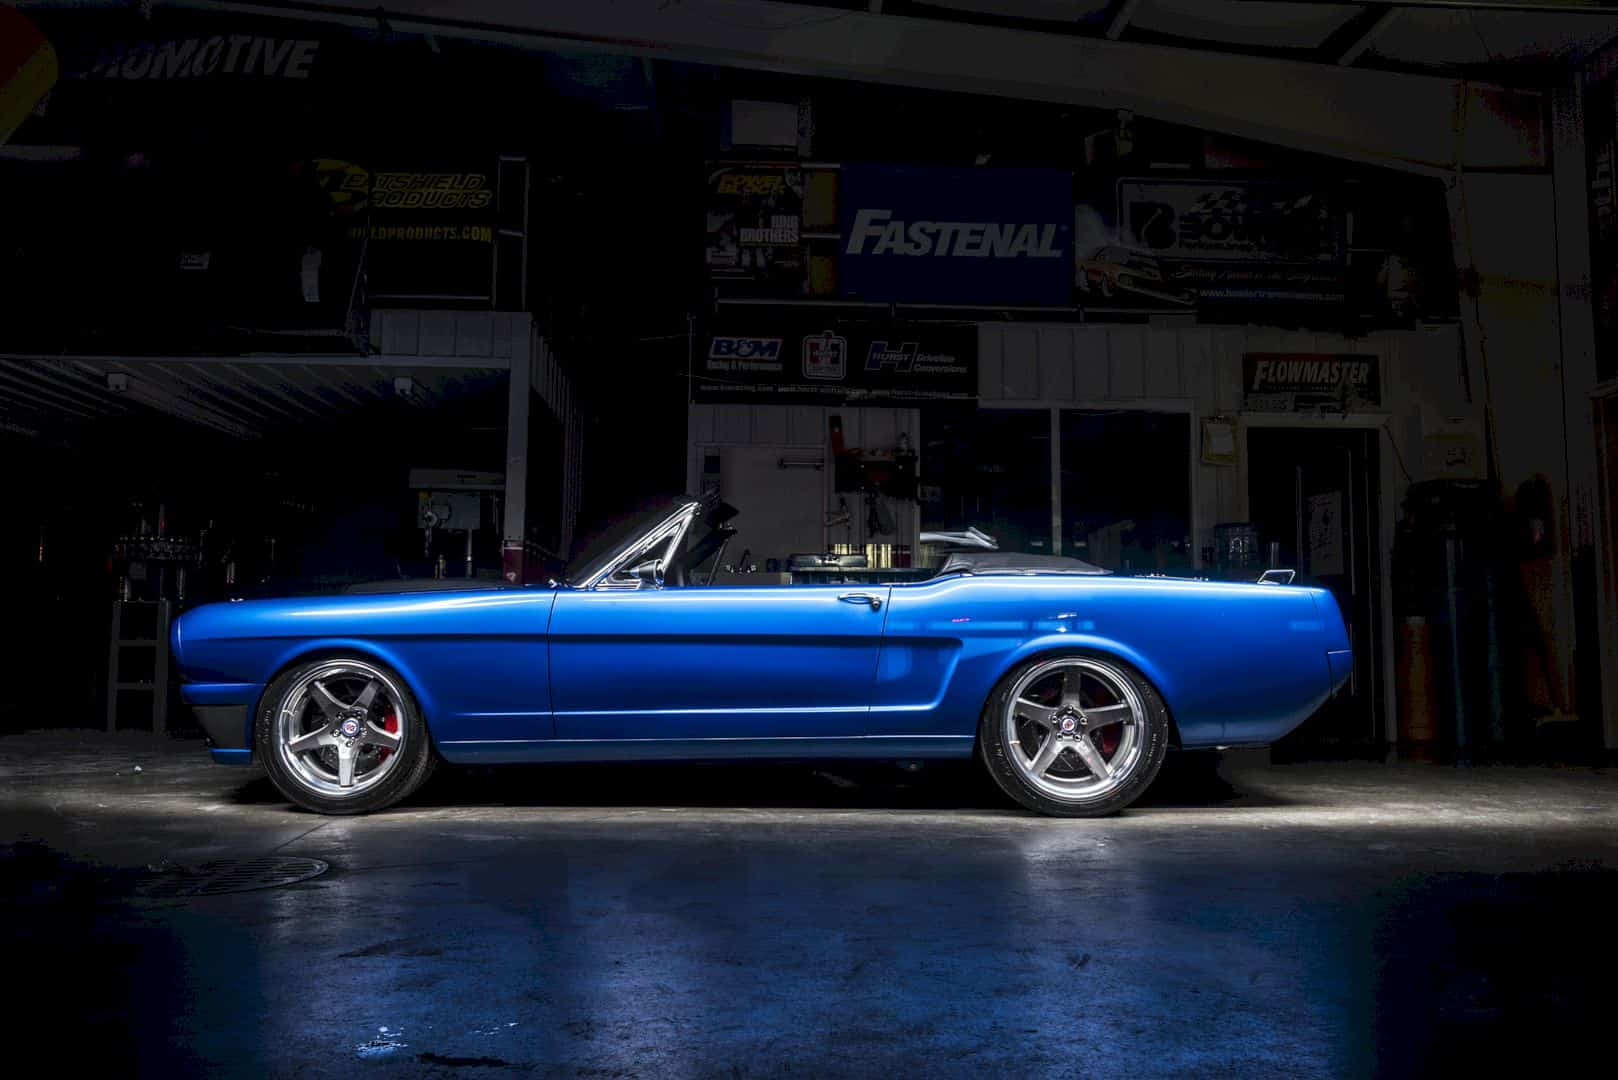 Ringbrothers' 1965 Mustang Ballistic Revamp The Class of Mustang